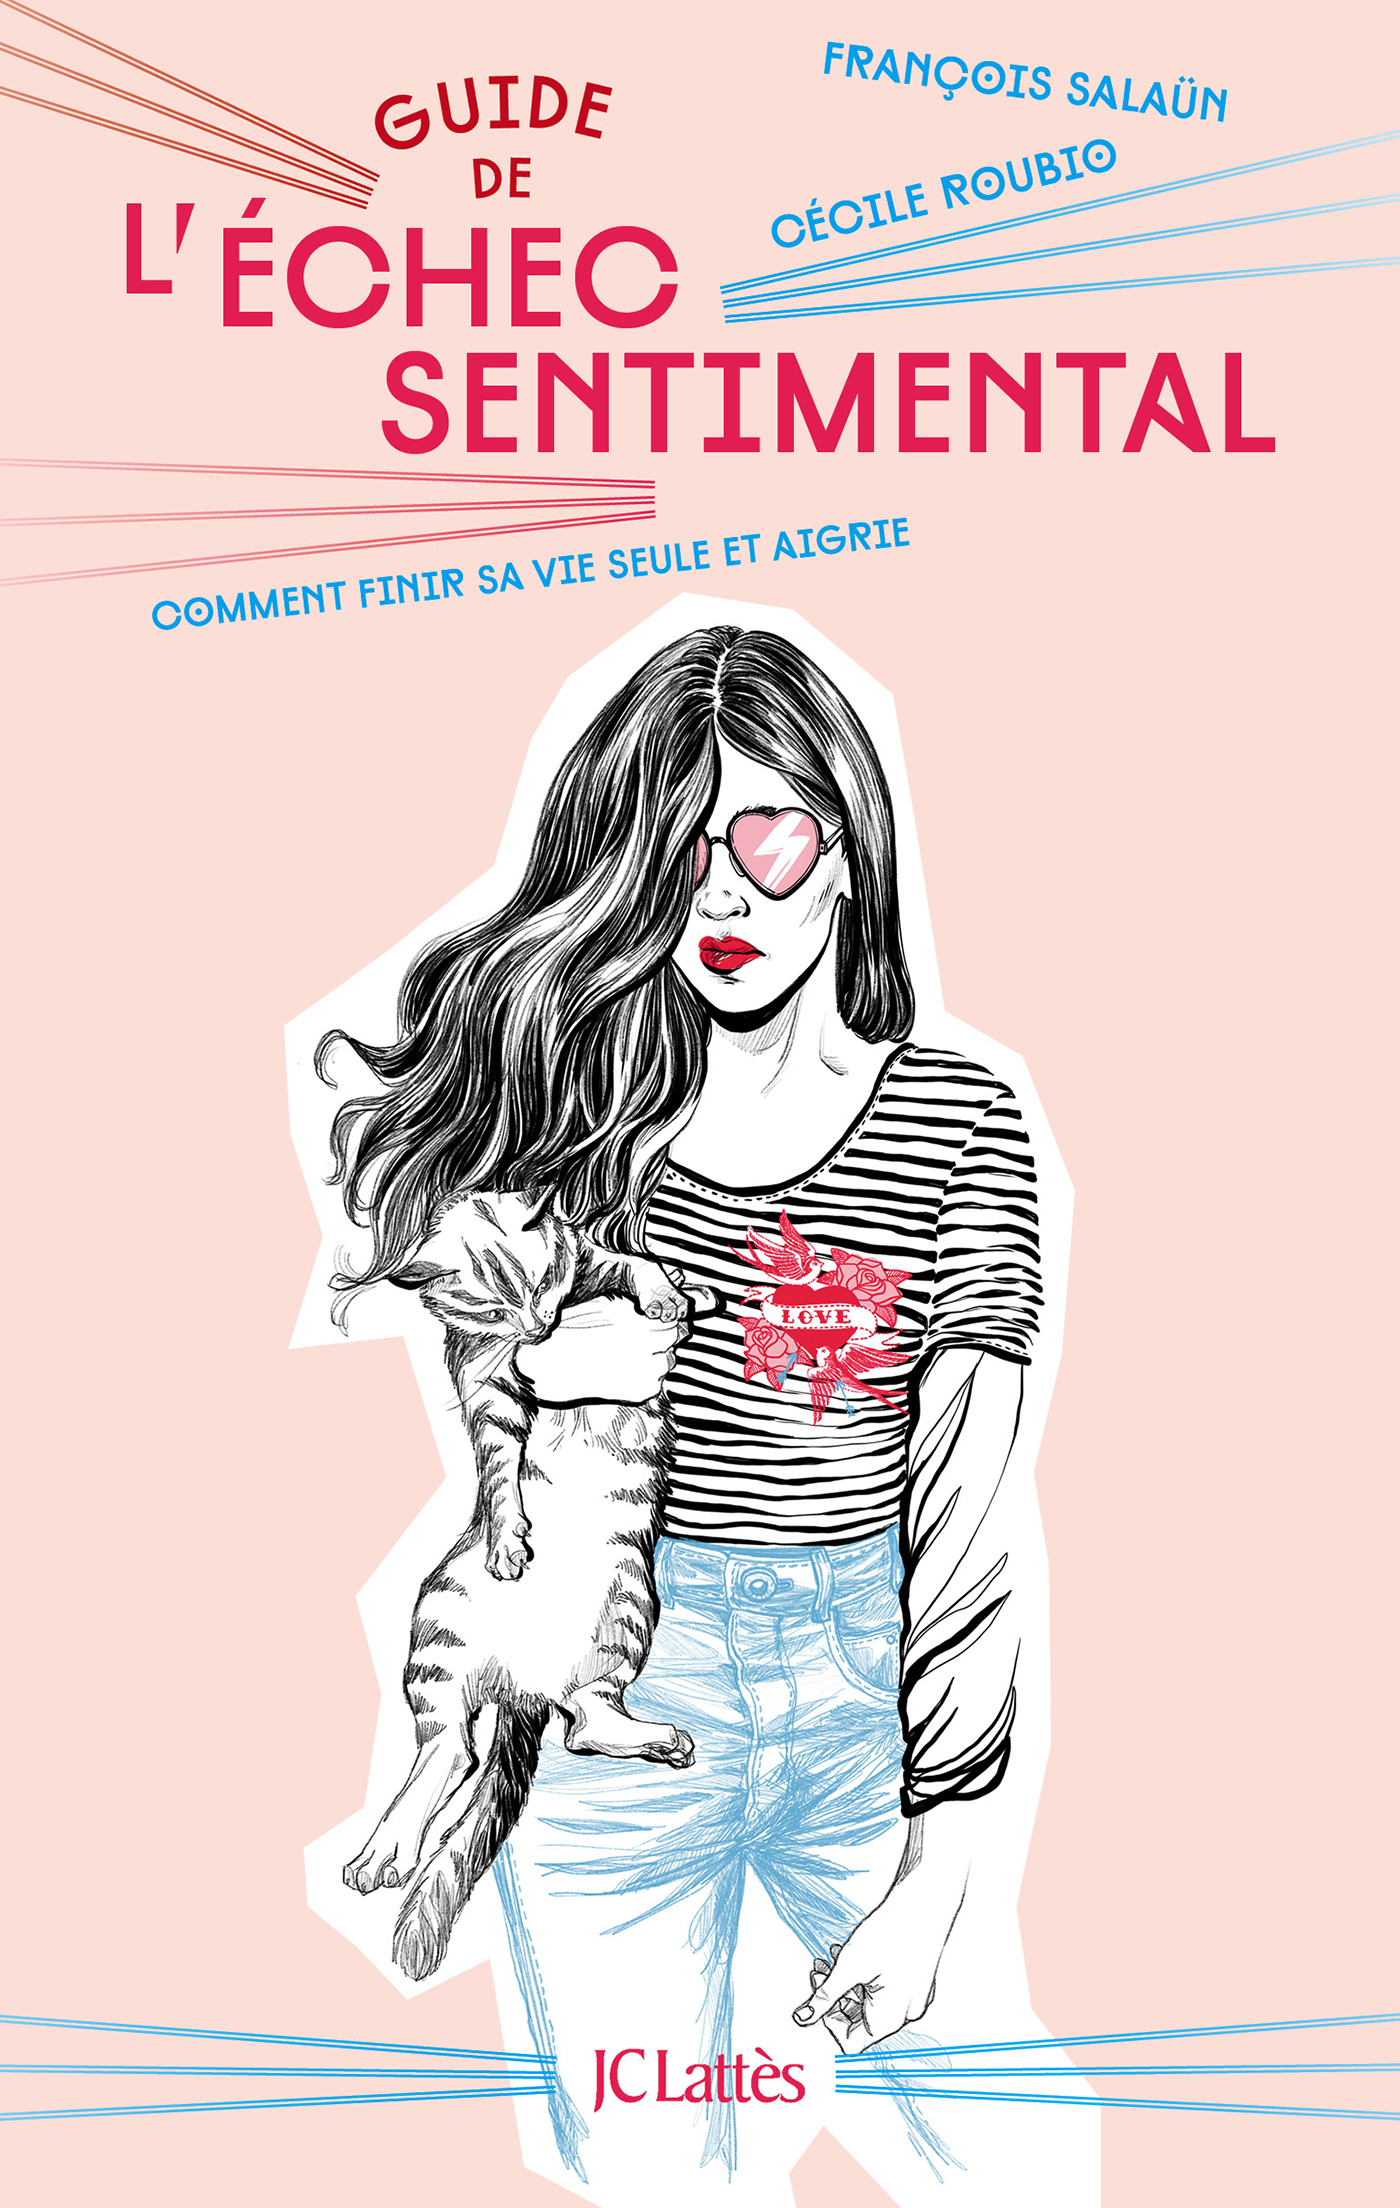 Guide de l'échec sentimental